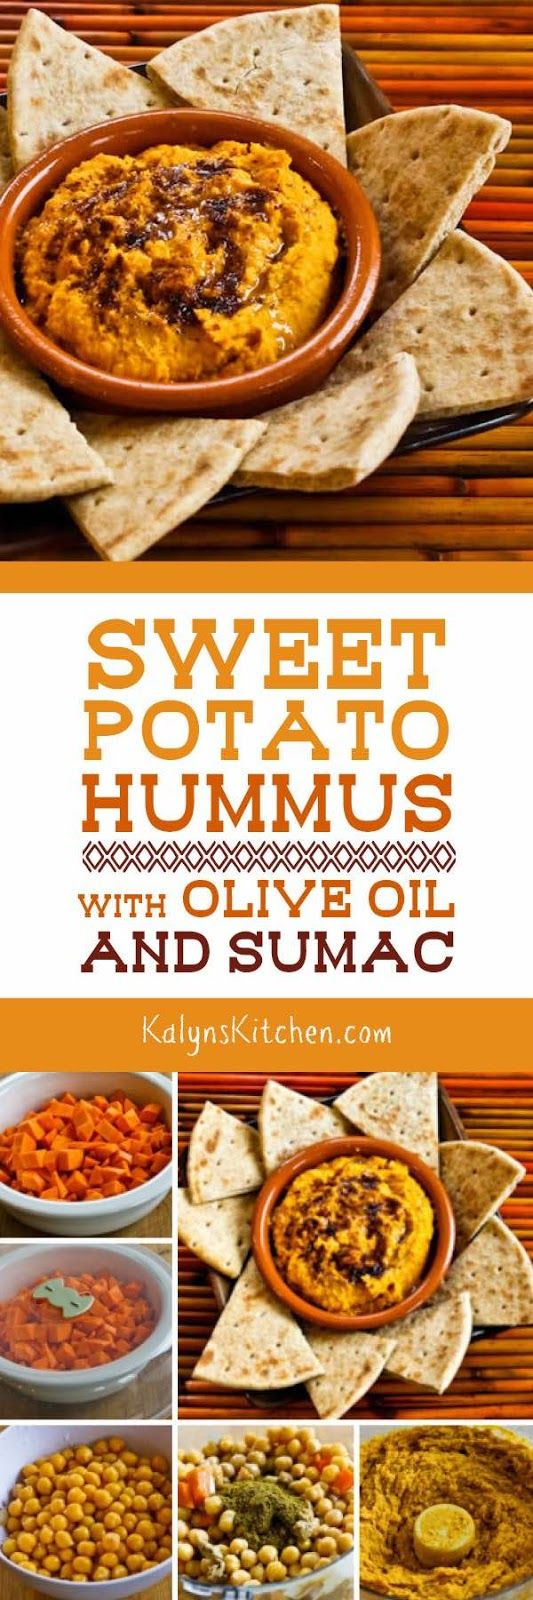 Sweet Potato Hummus with Olive Oil and Sumac is a fun orange-collored ...